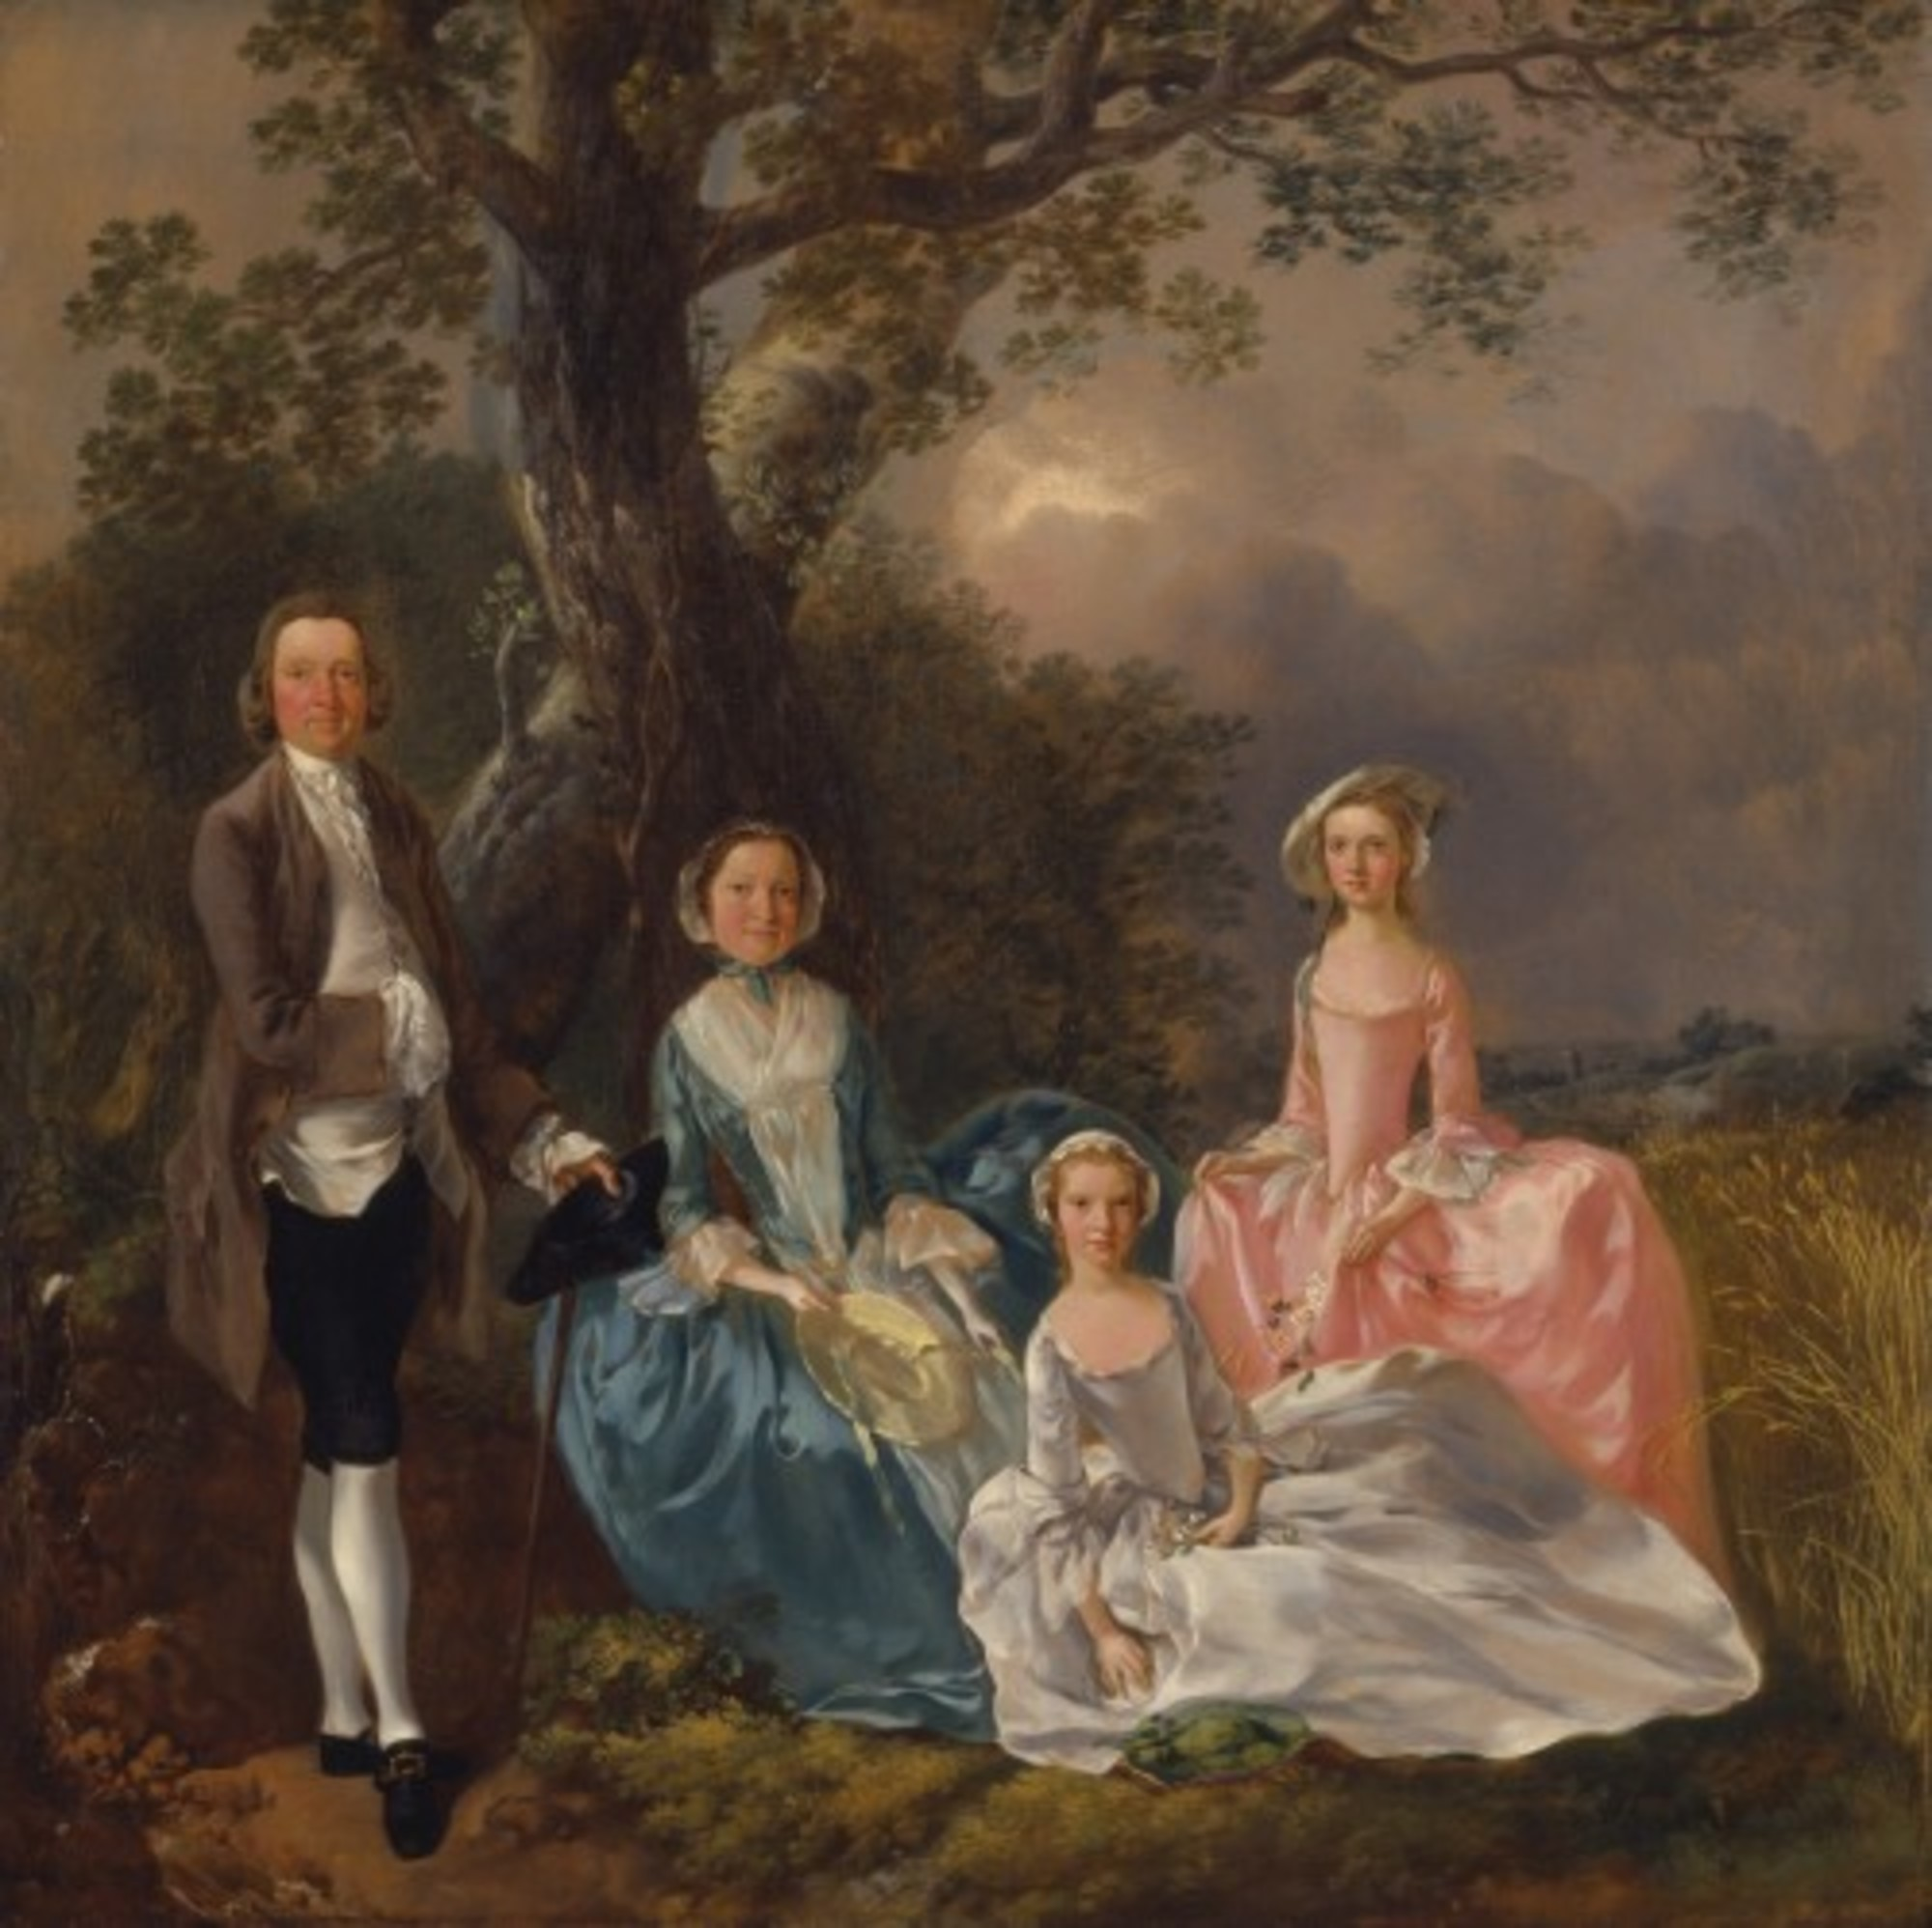 Thomas_Gainsborough_-_The_Gravenor_Family_-_Google_Art_Project.jpg